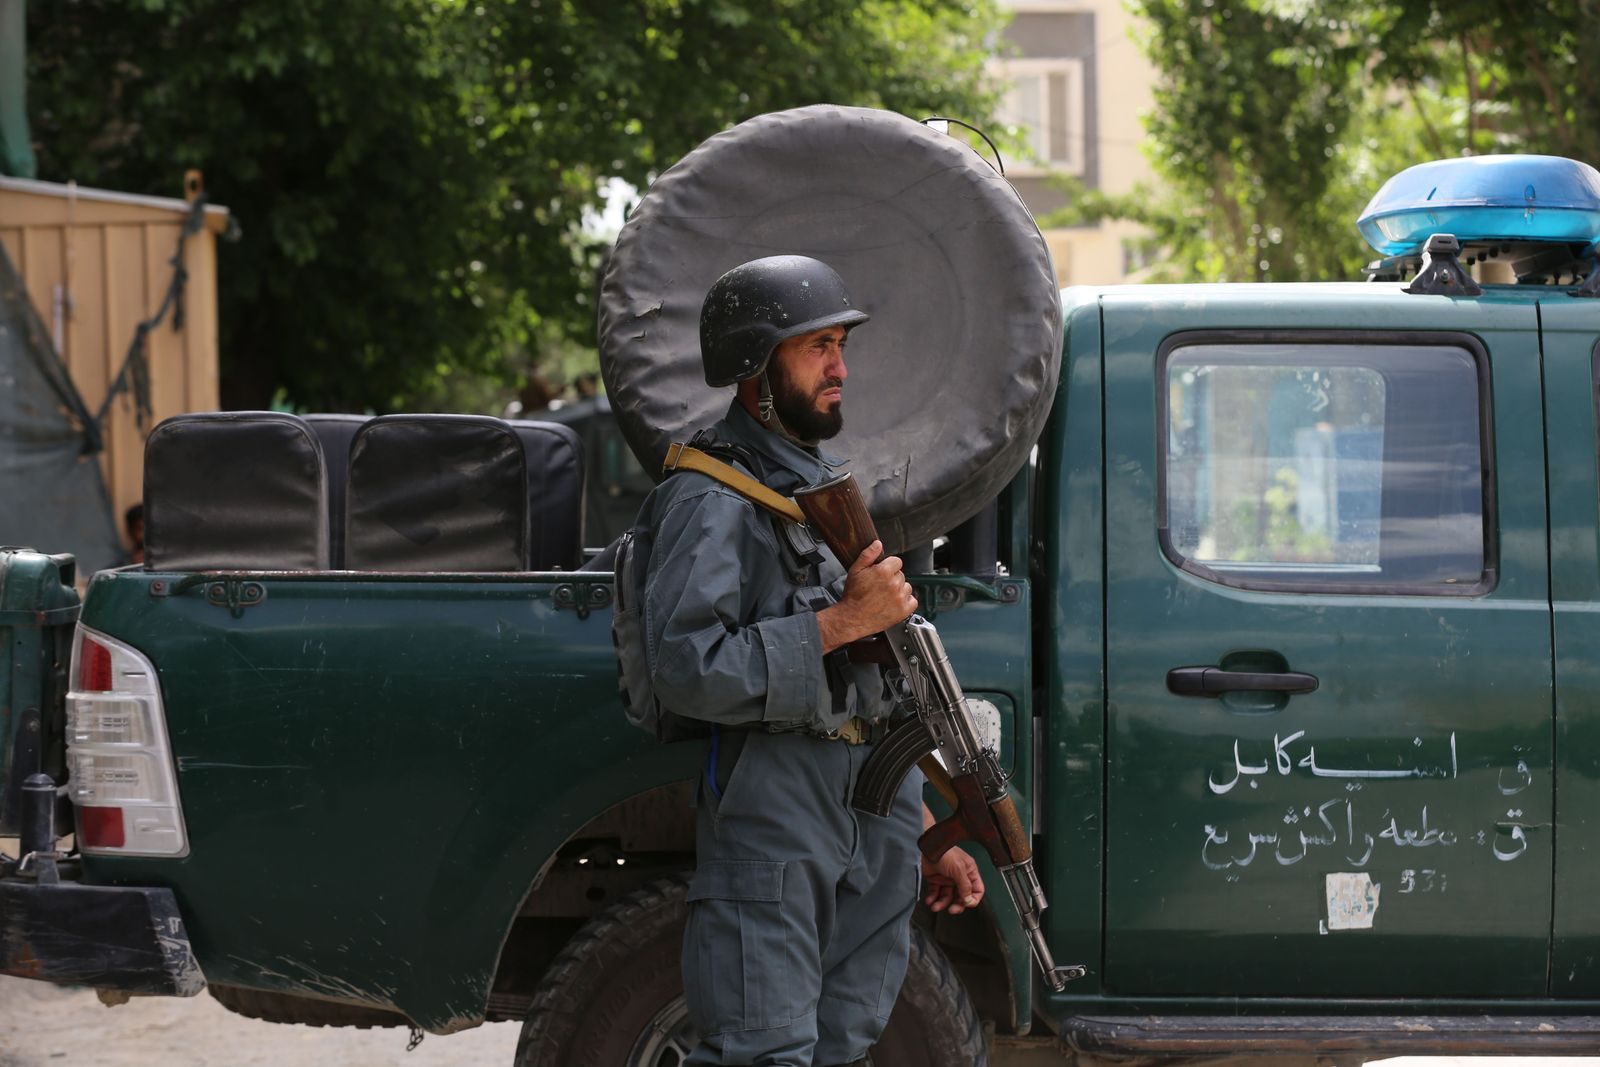 Mosque bombing attack in Kabul, Afghanistan - 12 Jun 2020